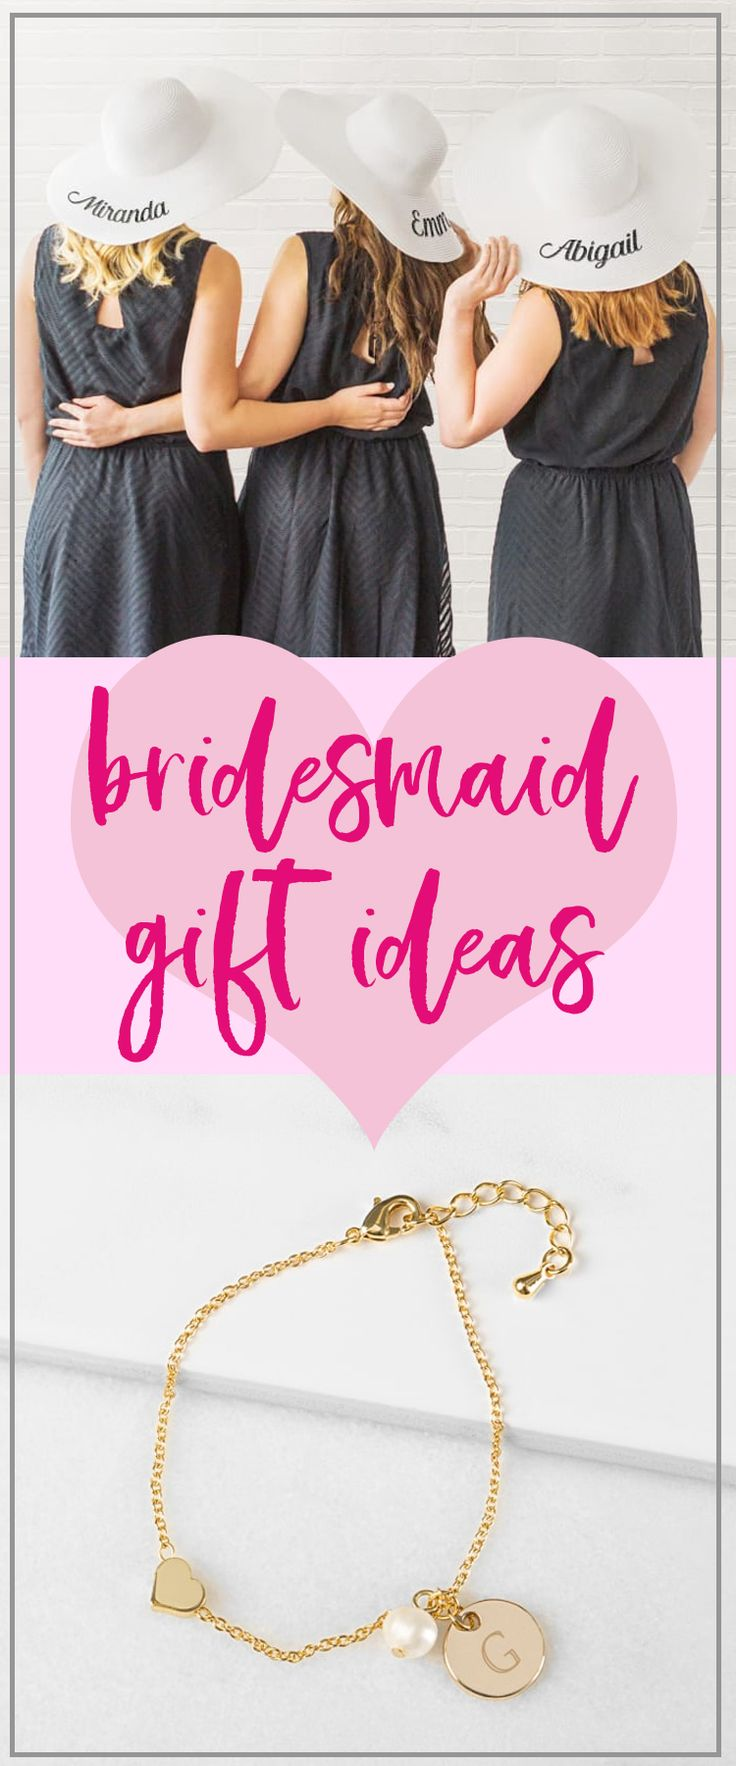 23 best Great Gifts to Give! images on Pinterest   Exclusively ...